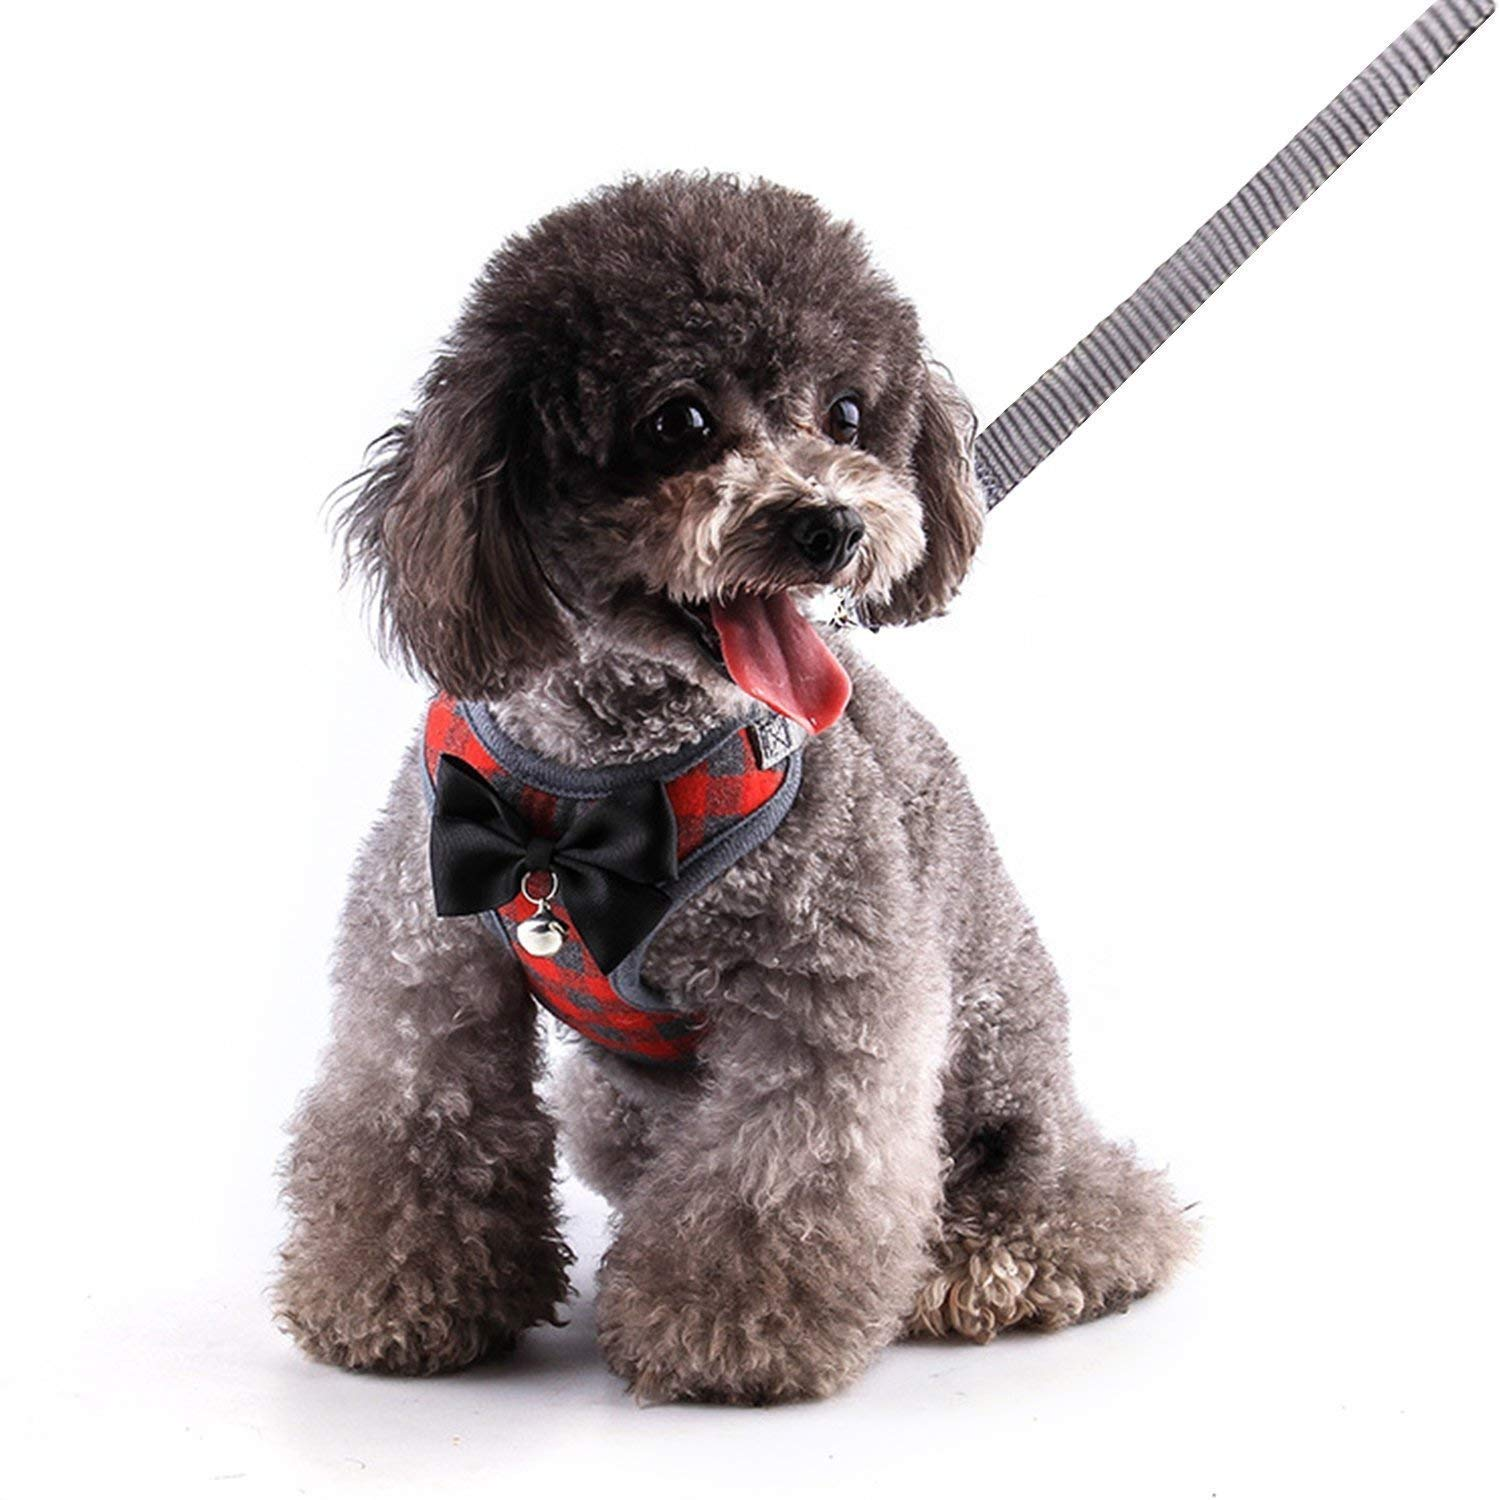 RYPET Small Dog Harness and Leash Set - No Pull Pet Harness with Soft Mesh Nylon Vest for Small Dogs and Cats Red M by RYPET (Image #7)